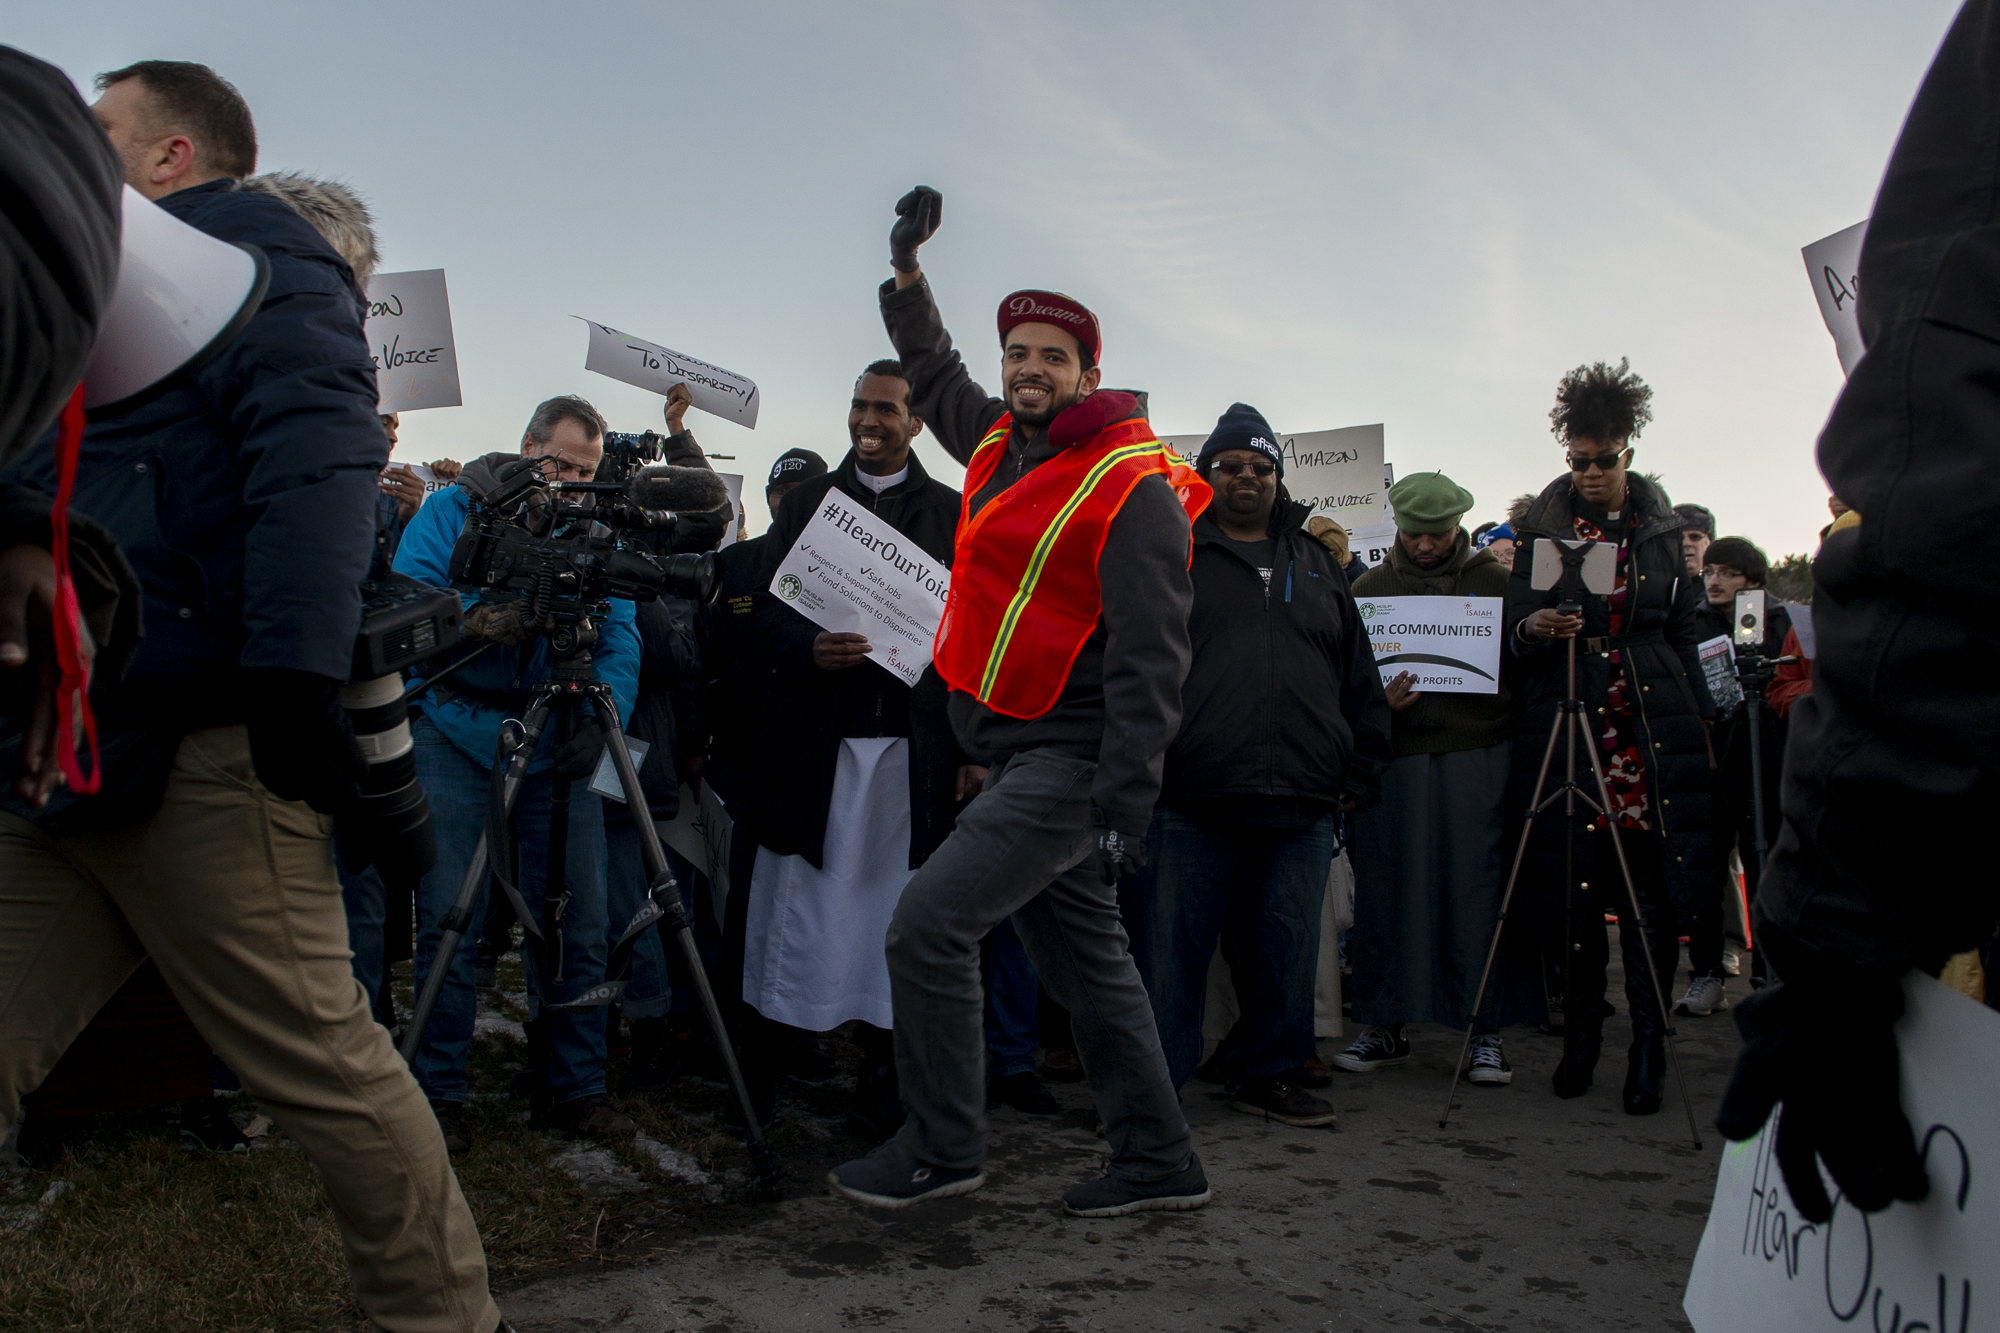 A man dances in the crowd during a protest at MSP-1, the Amazon fulfillment center in Shakopee, Minnesota, on December 14, 2018. Workers at the warehouse have been fighting amazon for better conditions, including reduced speed quotas and better safety regulations.